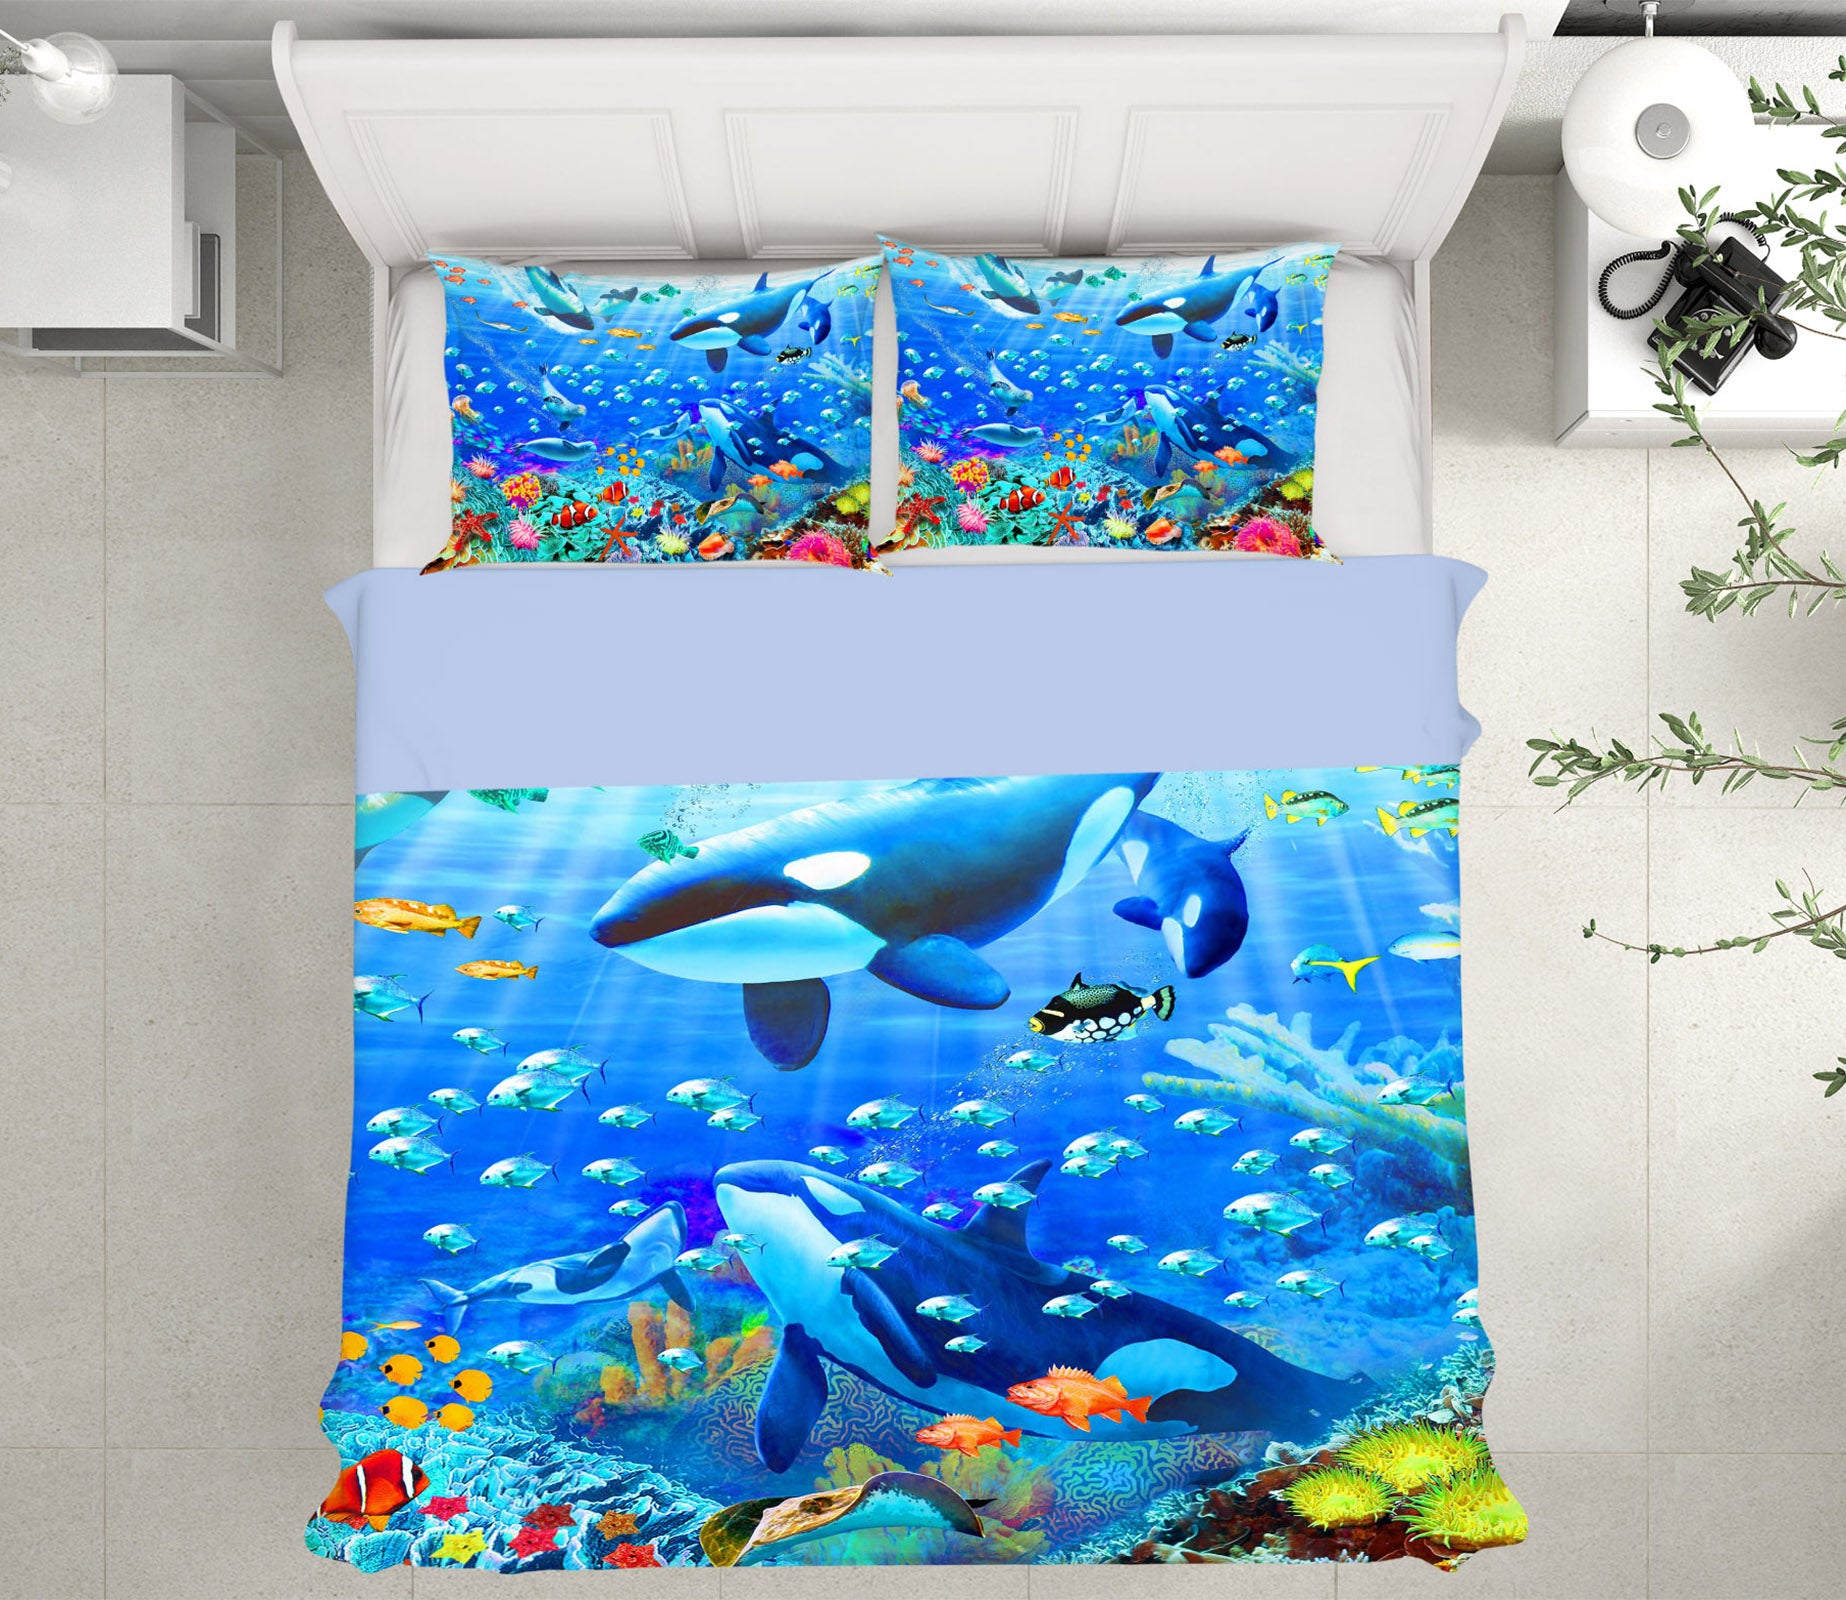 3D Blue Whale 2032 Adrian Chesterman Bedding Bed Pillowcases Quilt